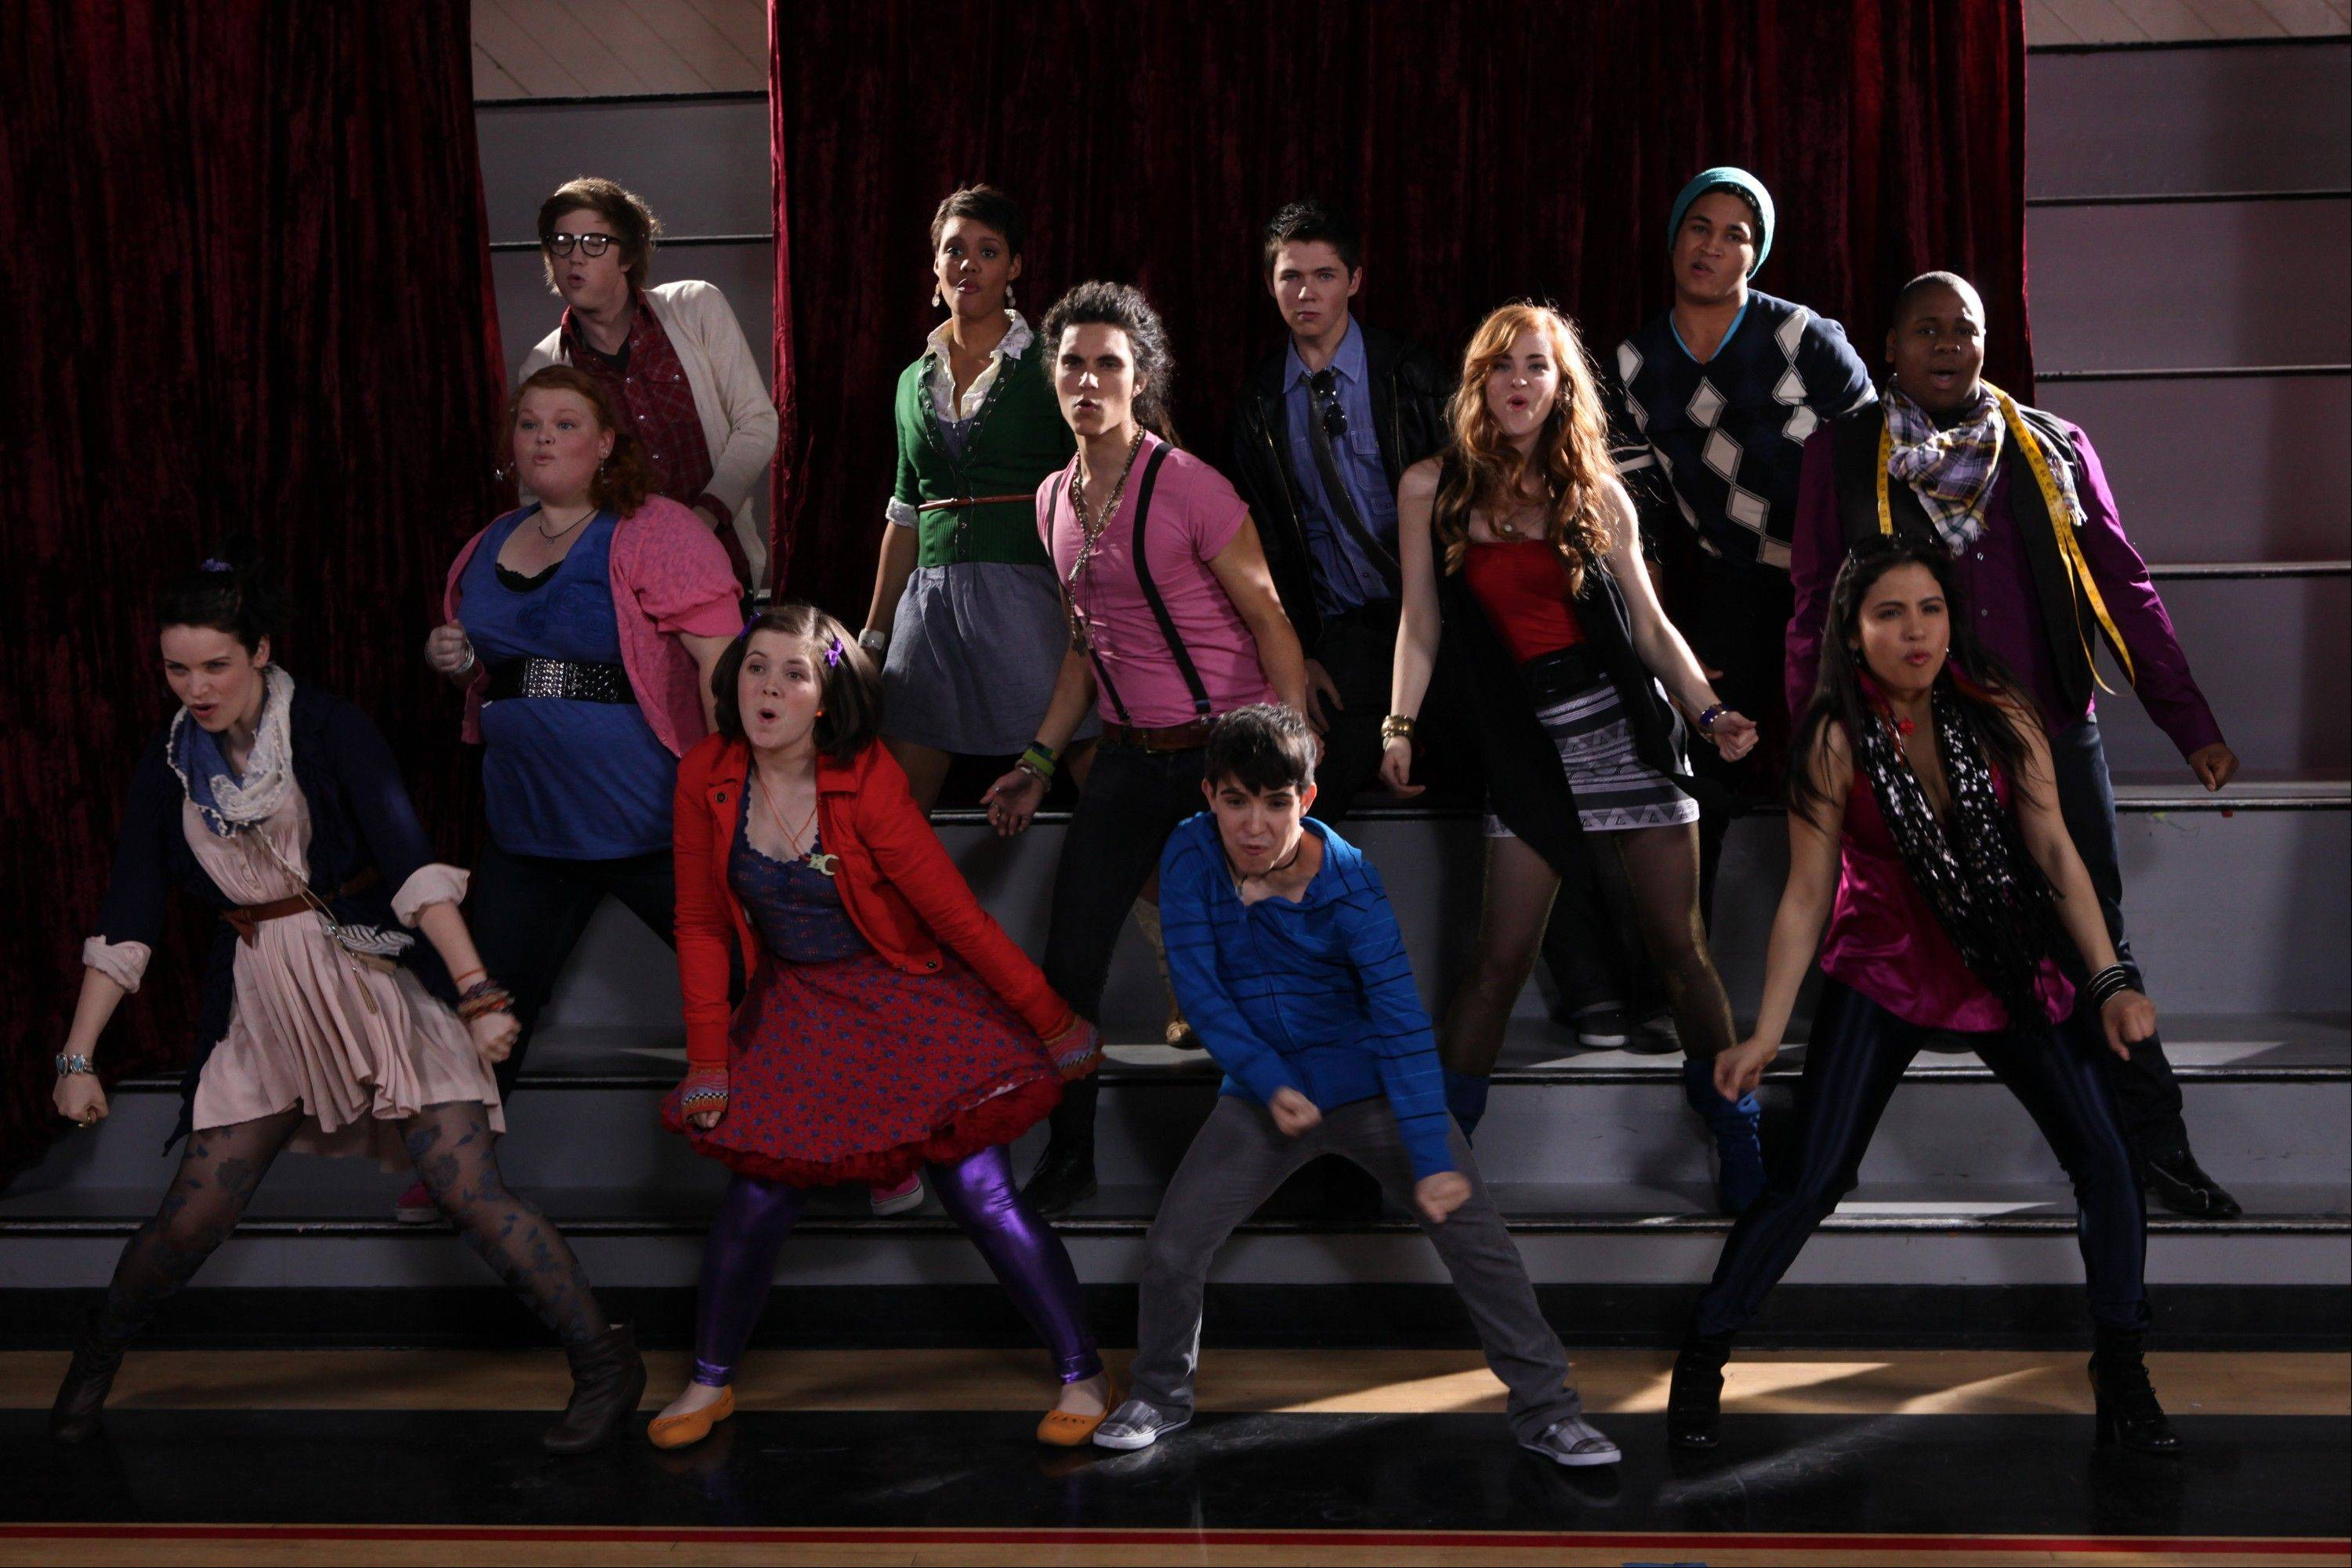 "Ellis Wylie, of Grayslake, second from right in the front row, performs a Lady Gaga song with other cast members from ""The Glee Project."" The show airs at 8 p.m. Sundays on Oxygen."